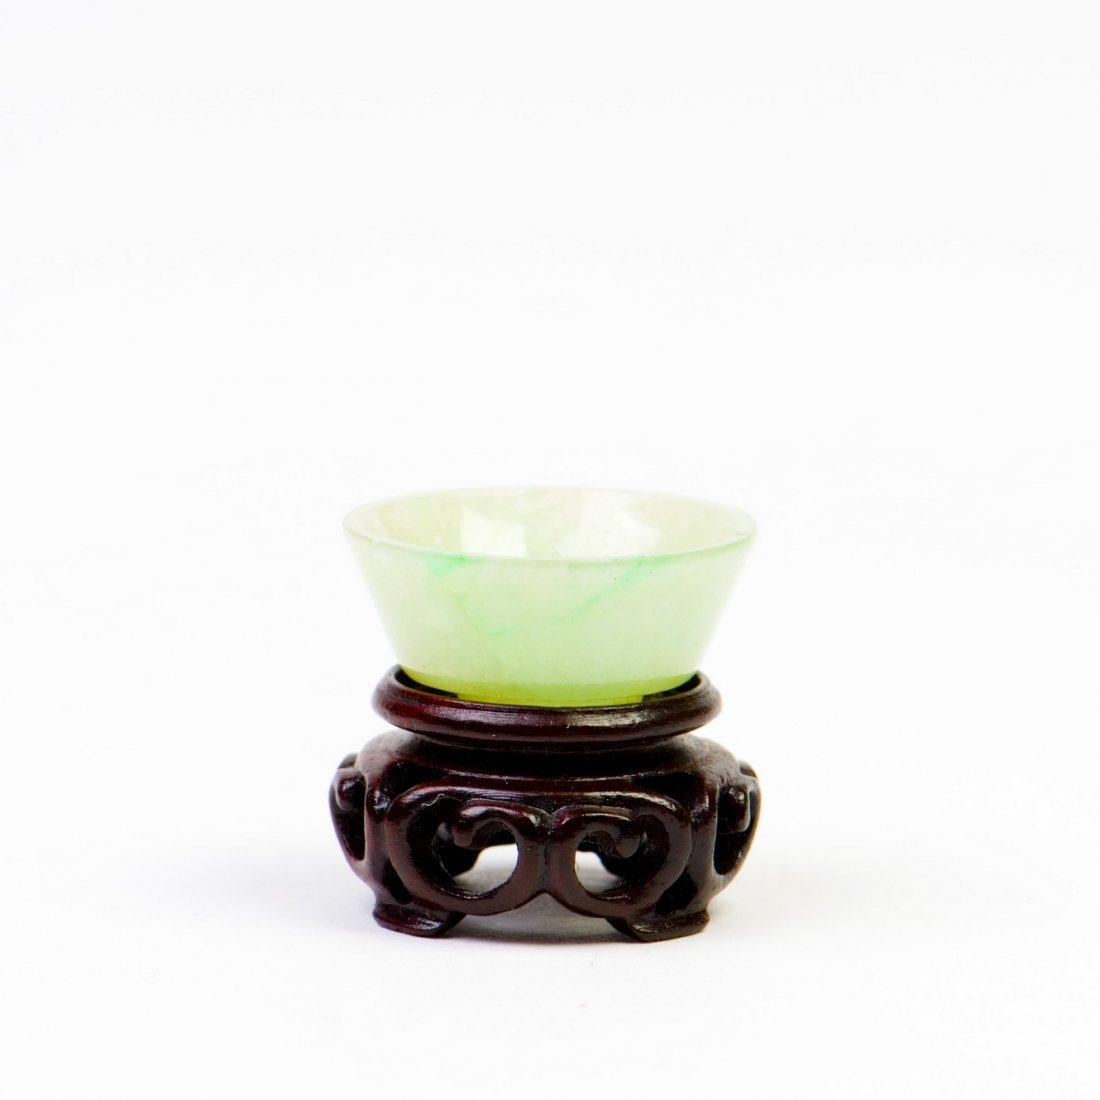 A WHITE JADE BOWL, QING DYNASTY, 18/19TH CENTURY